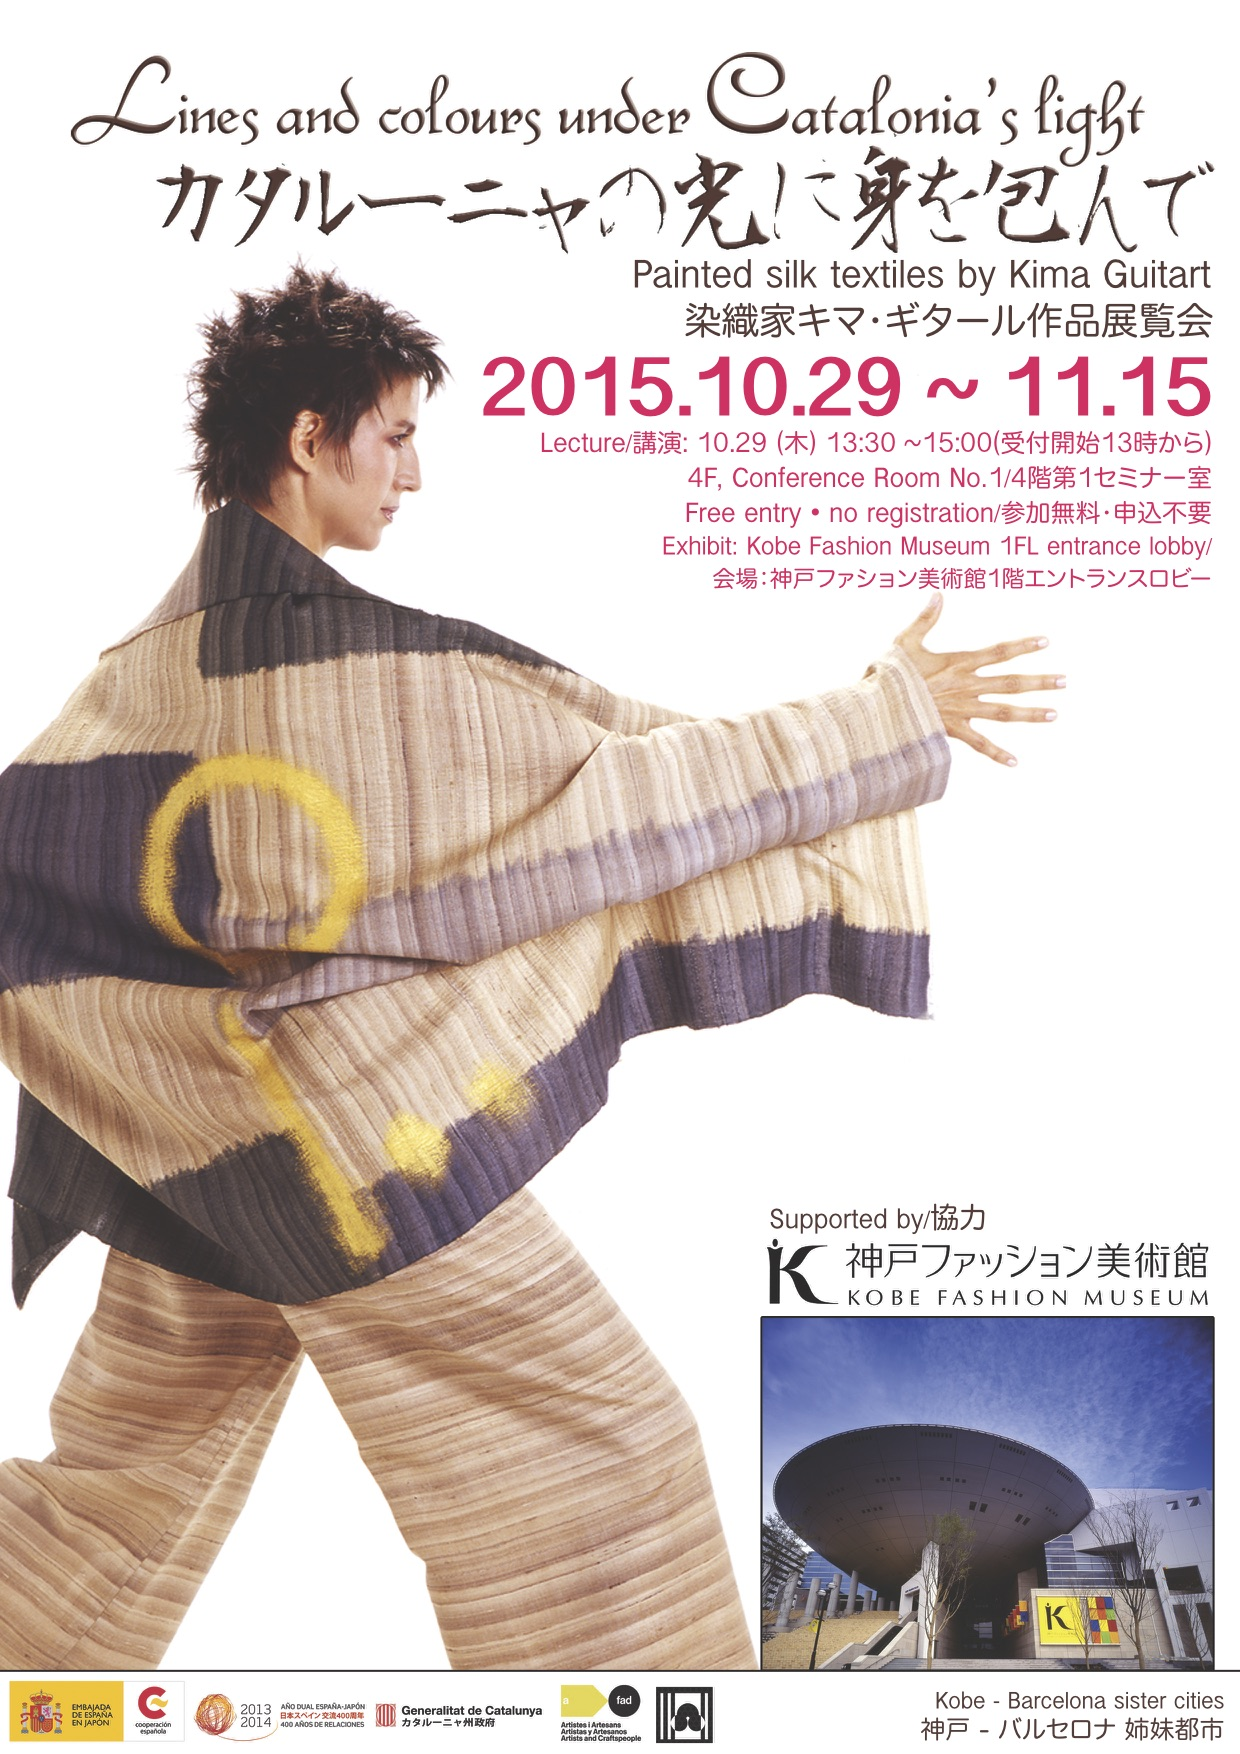 Kobe Fashion Museum Kima Guitart Exhibition